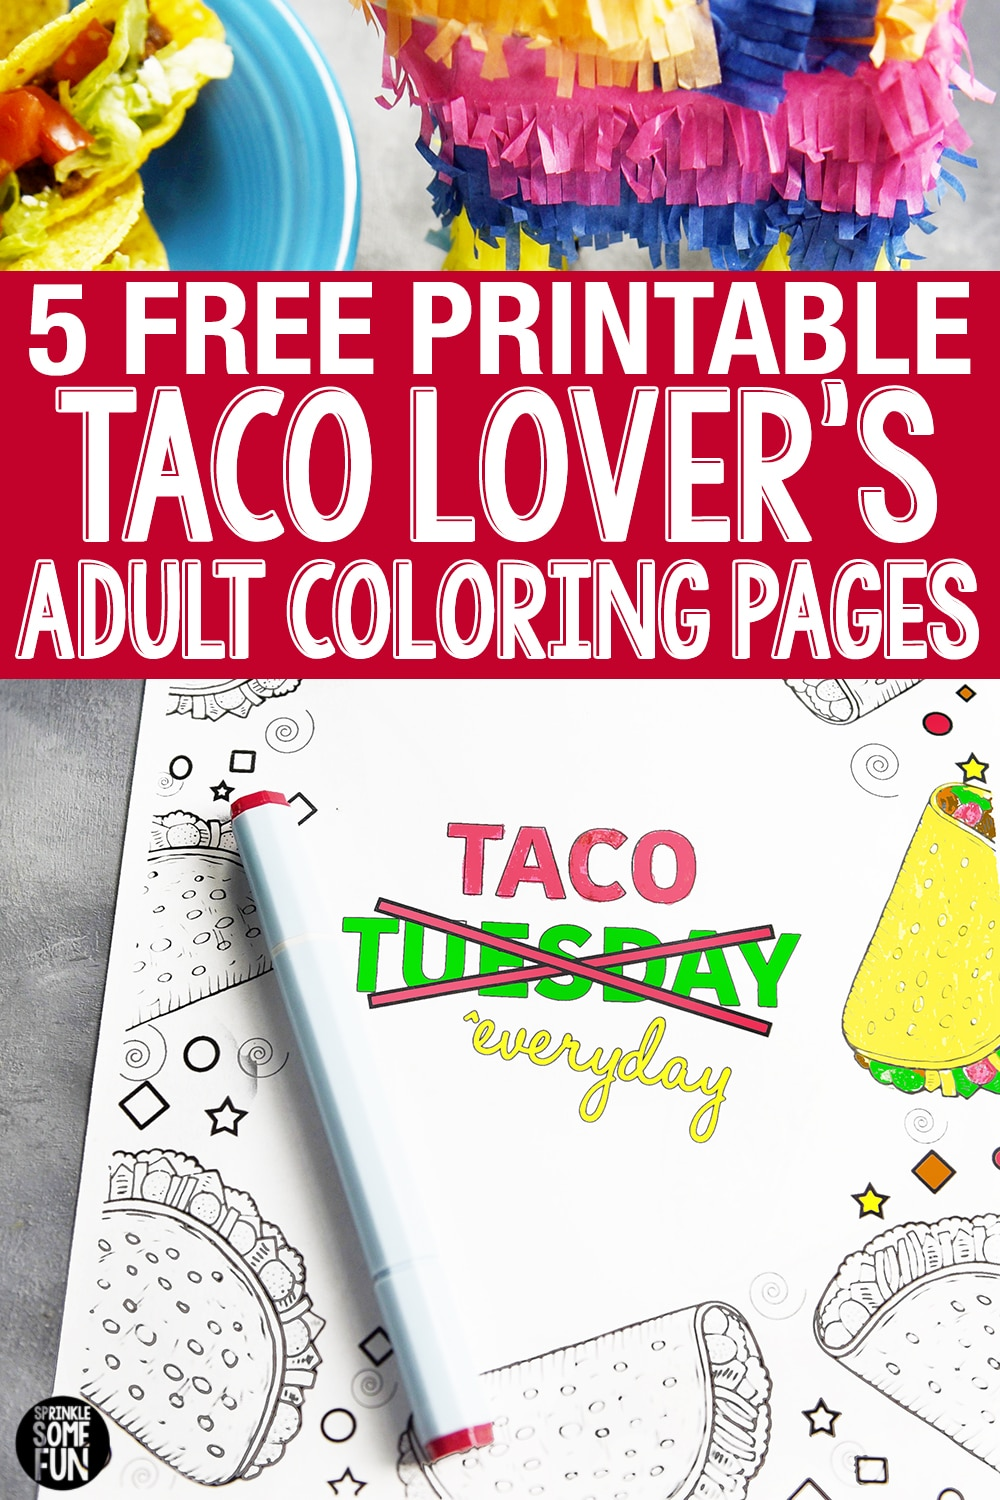 5 FREE Funny Taco Quotes Coloring Pages • Sprinkle Some Fun